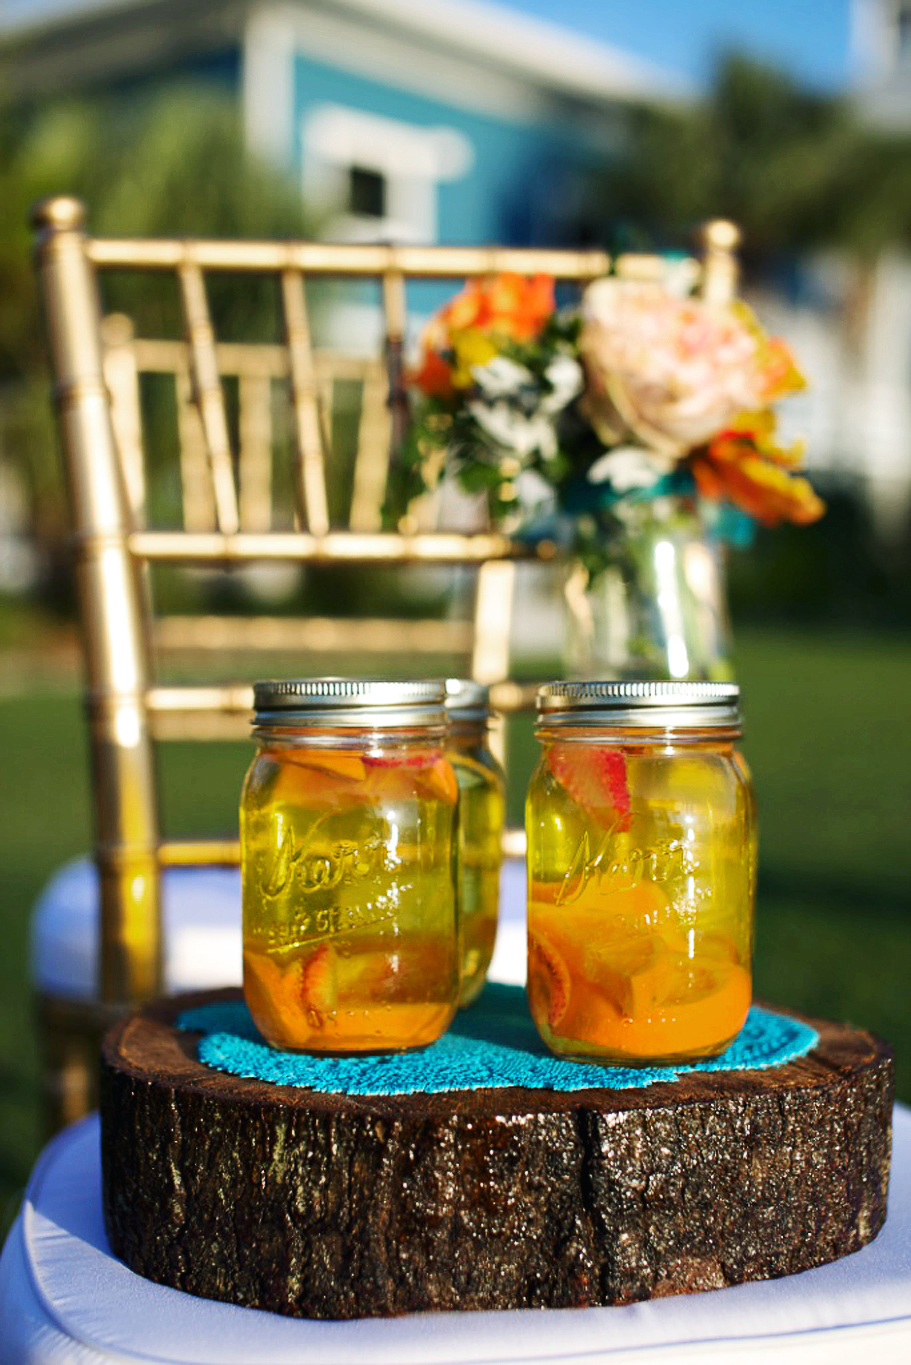 Rustic-citrus-wedding-inspiration-outdoor-spring-wedding-ideas-signature-drinks-in-mason-jars.original